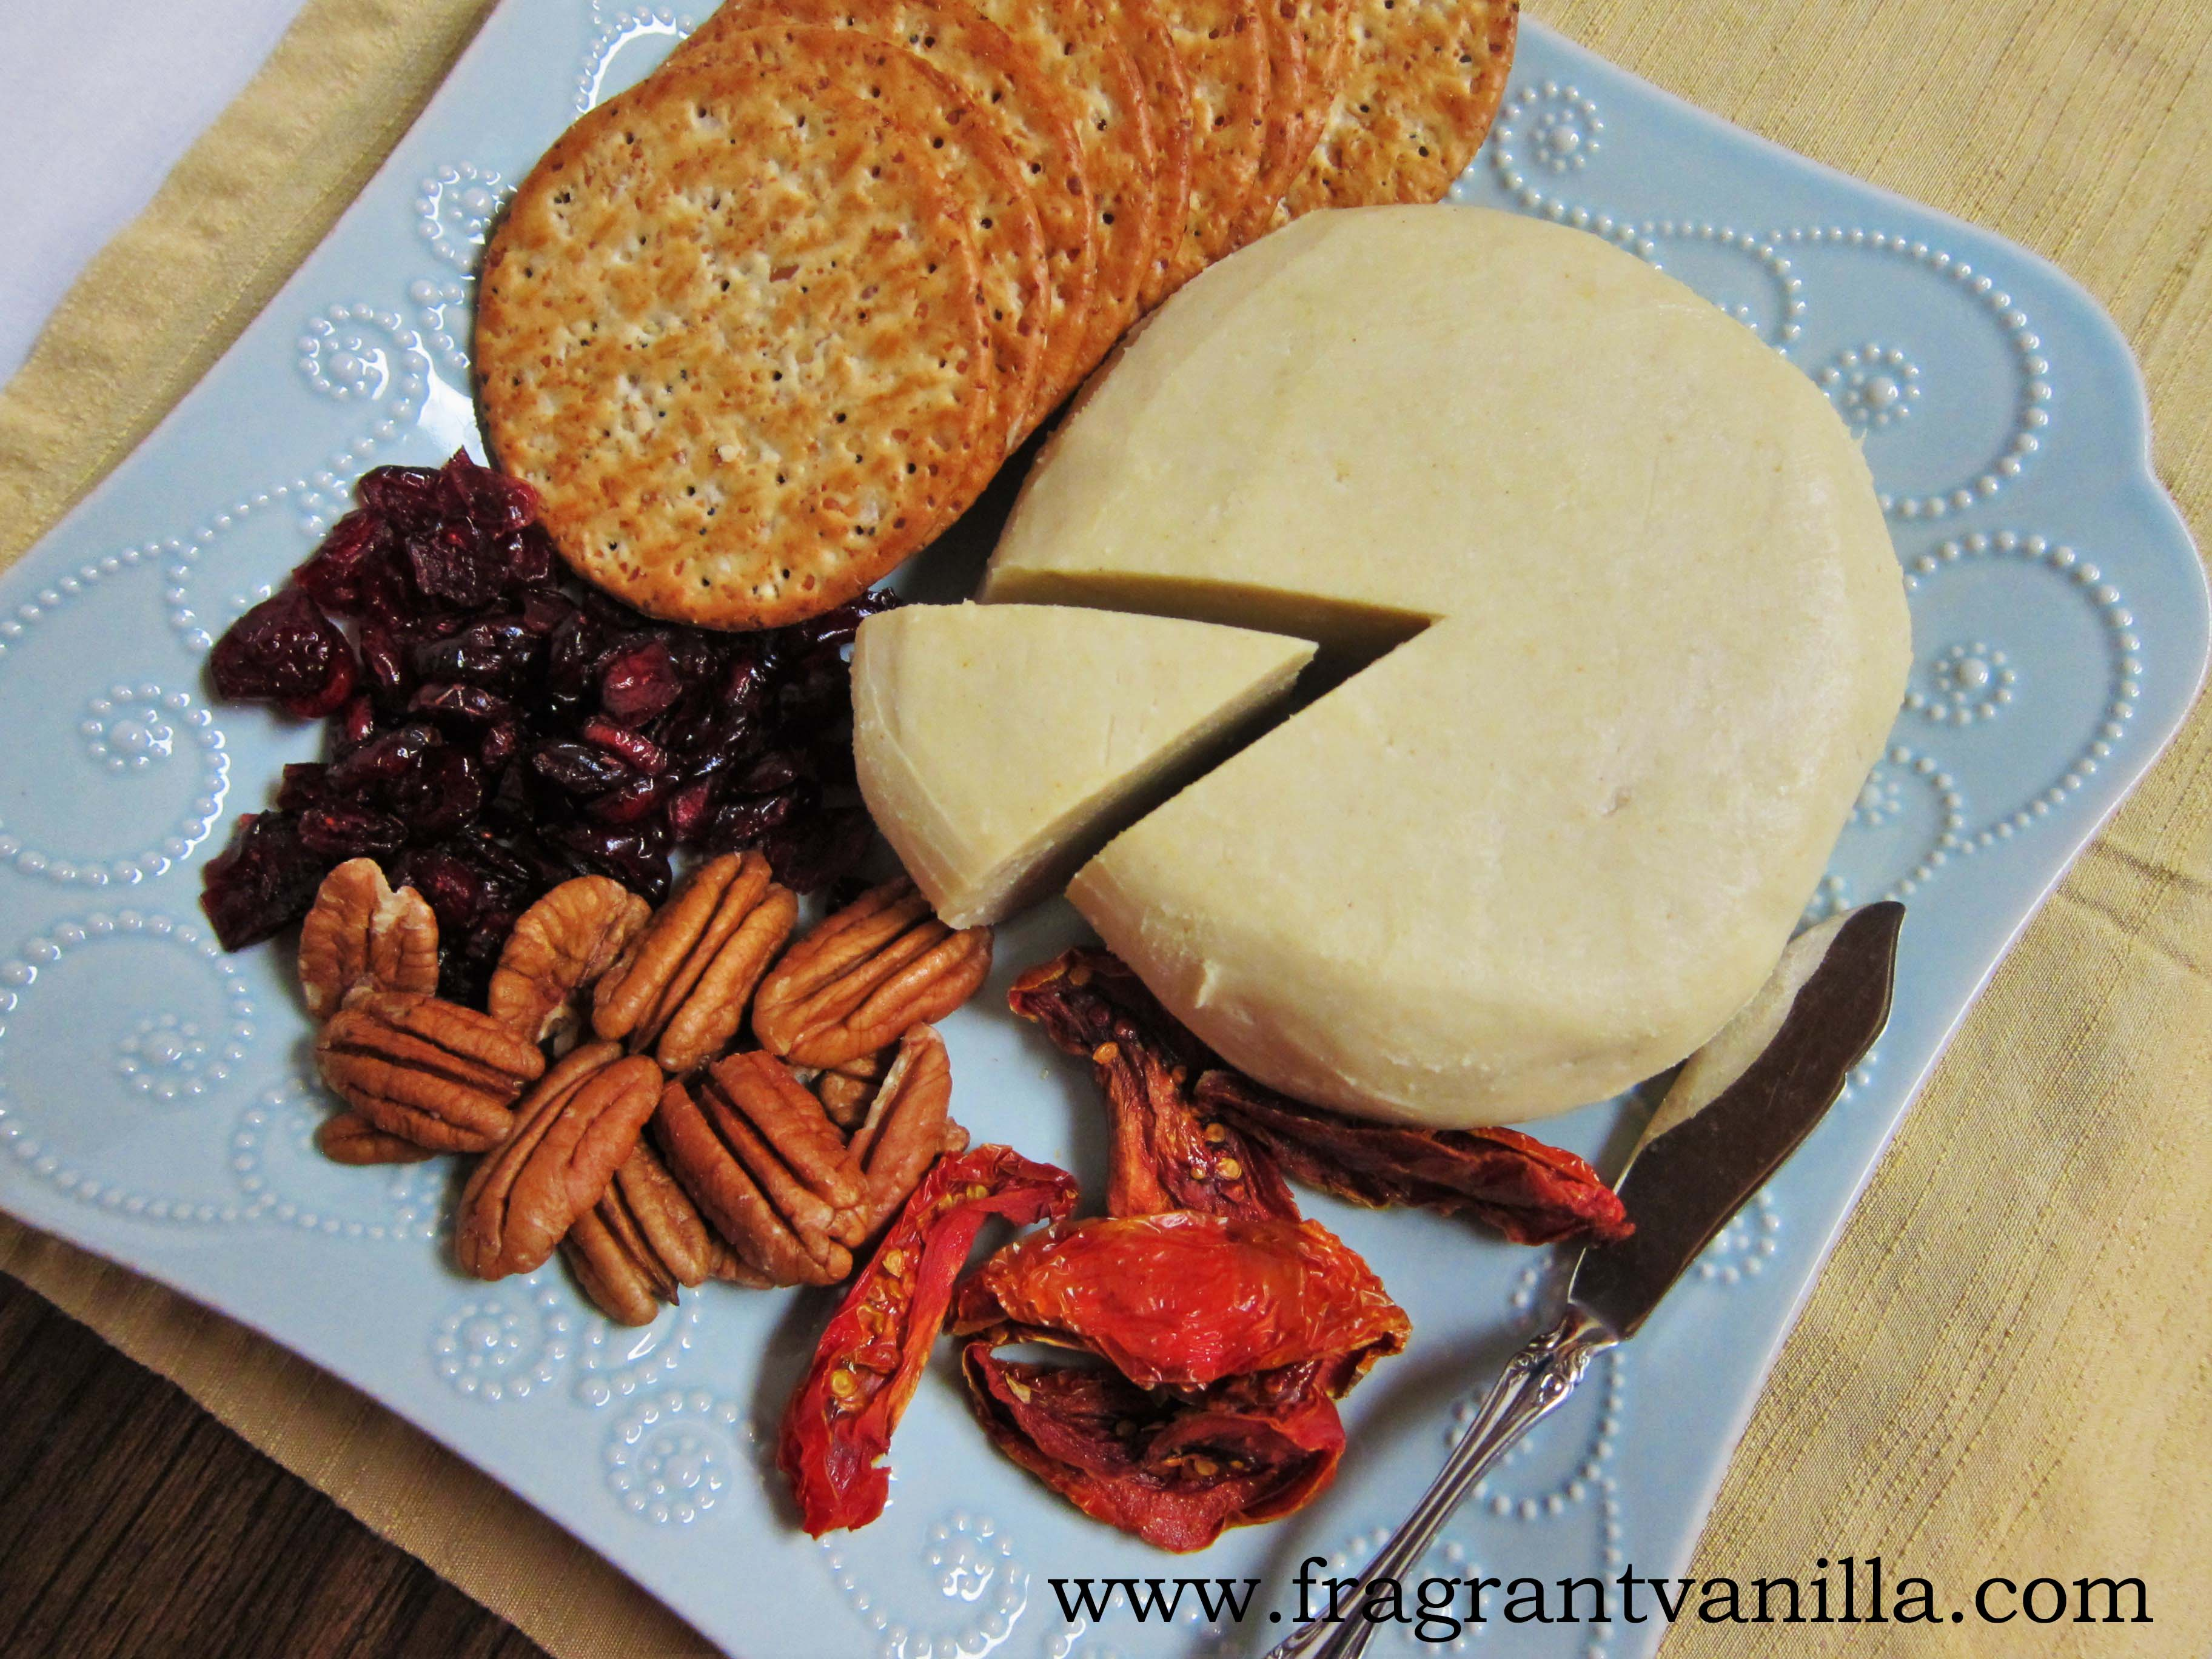 Vegan Sharp Cheddar Cheeze